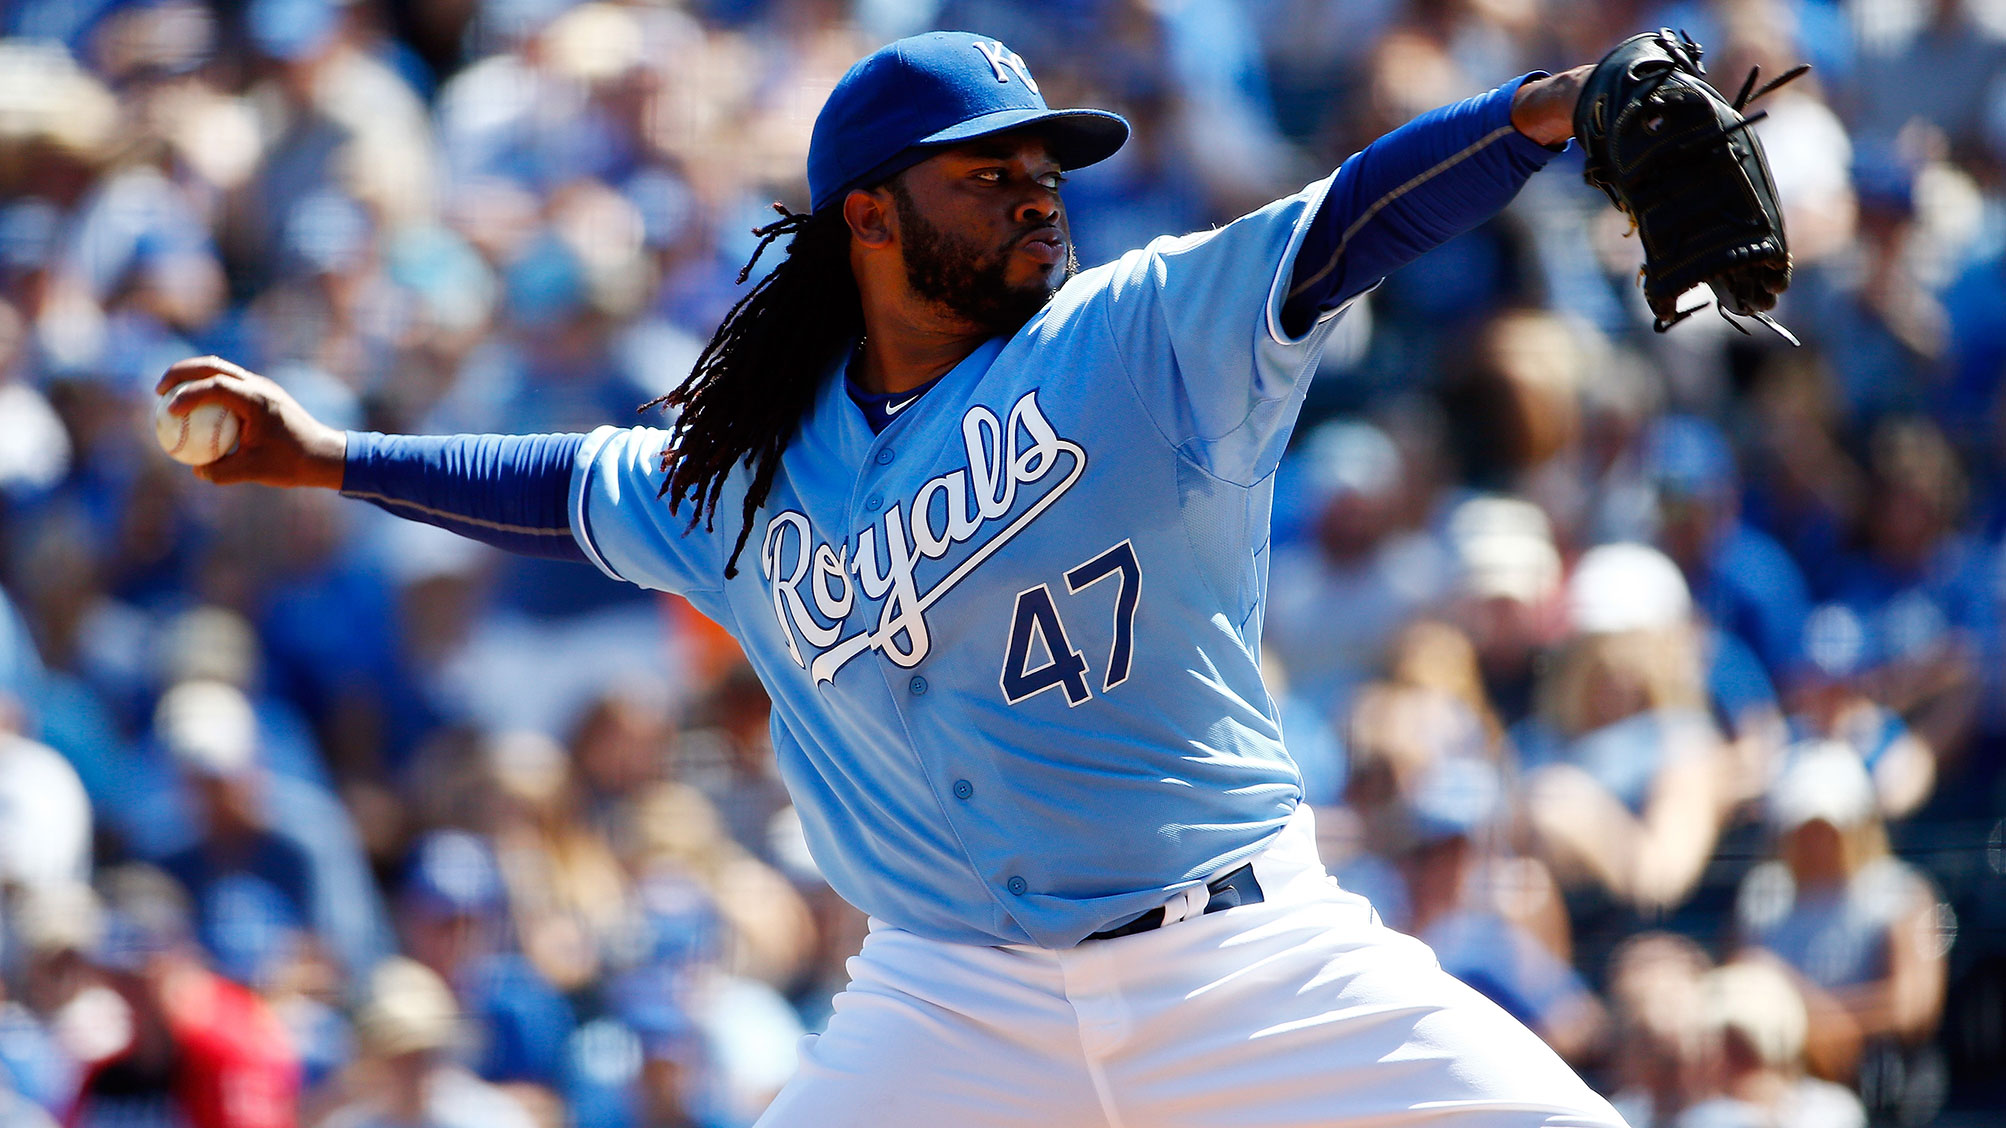 Johnny Cueto has struggled for the Royals, but K.C. might have enough to advance anyway.